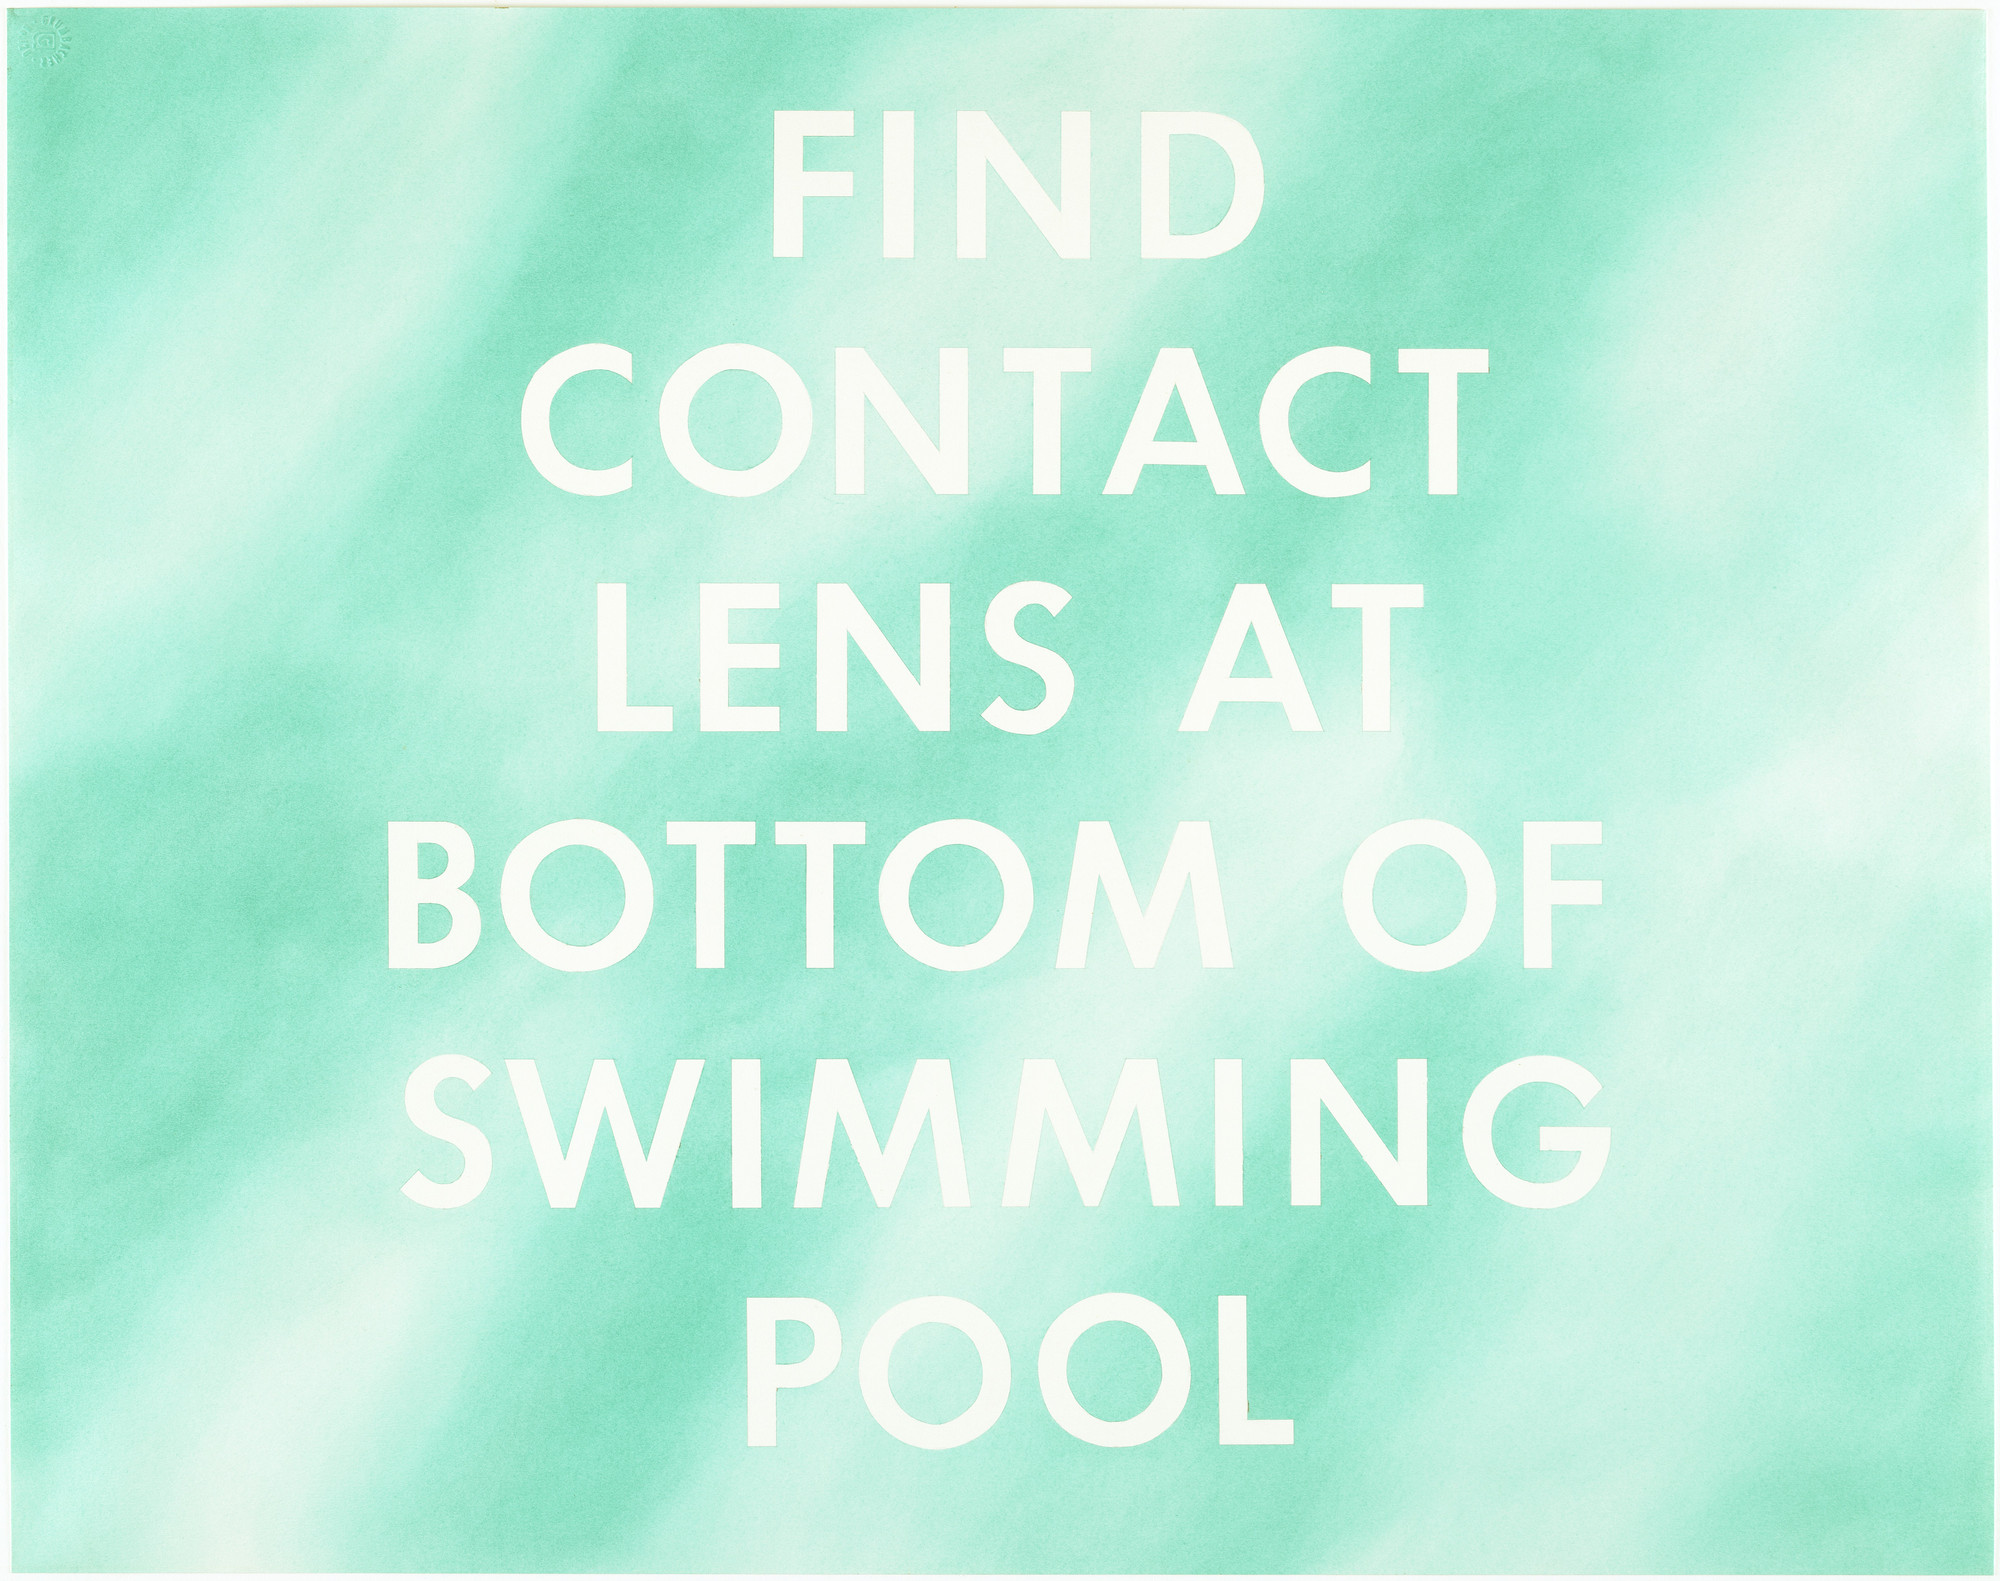 Edward Ruscha. Find Contact Lens at Bottom of Swimming Pool. 1976